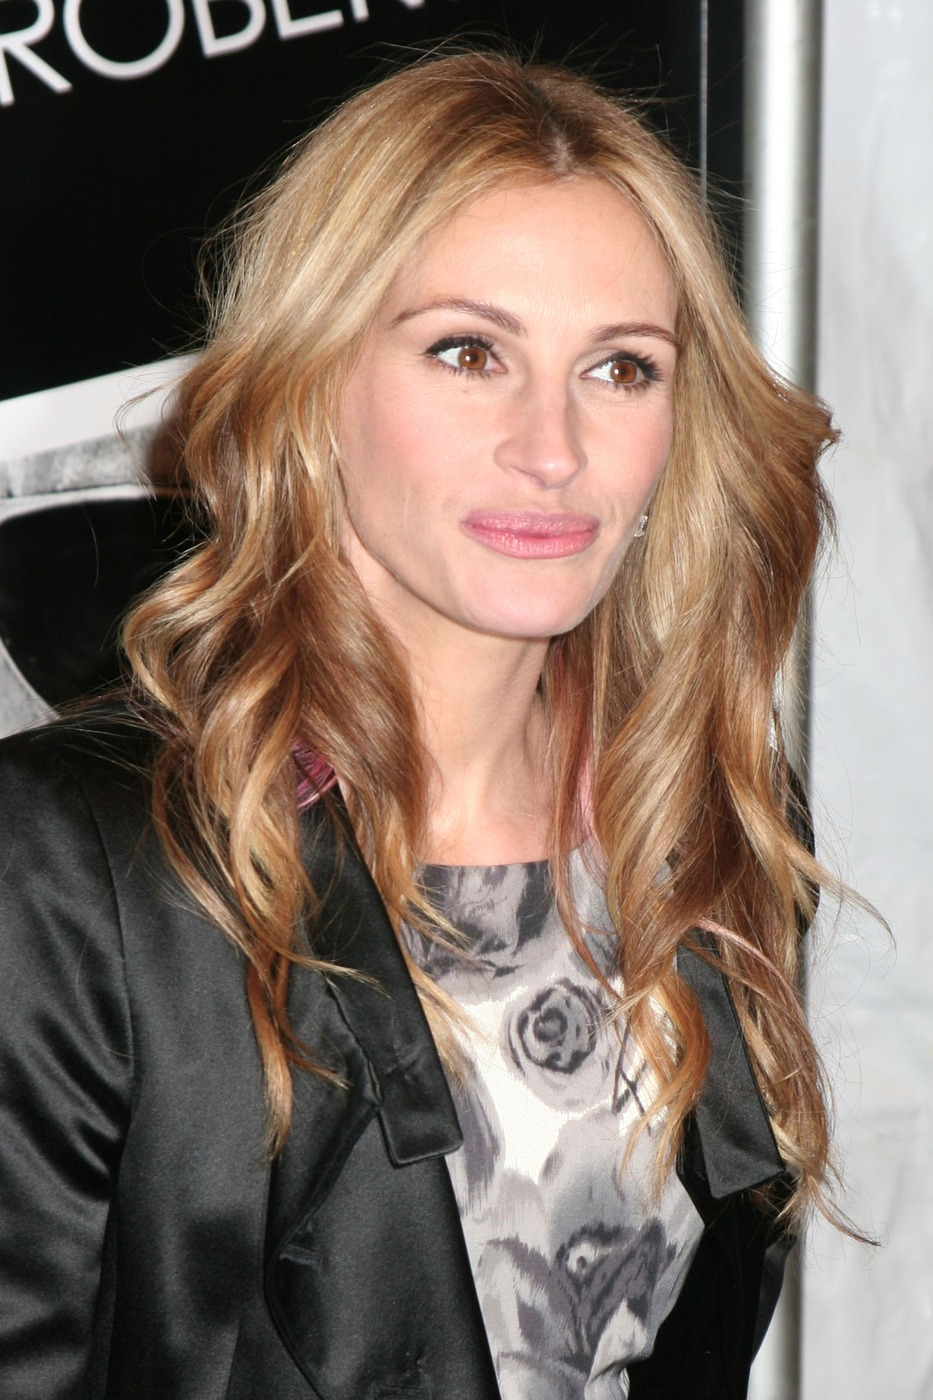 Julia Roberts So Devastated By Half Sister Nancy Motes S: Like Every Body: Julia Roberts Profile And Pictures 2012